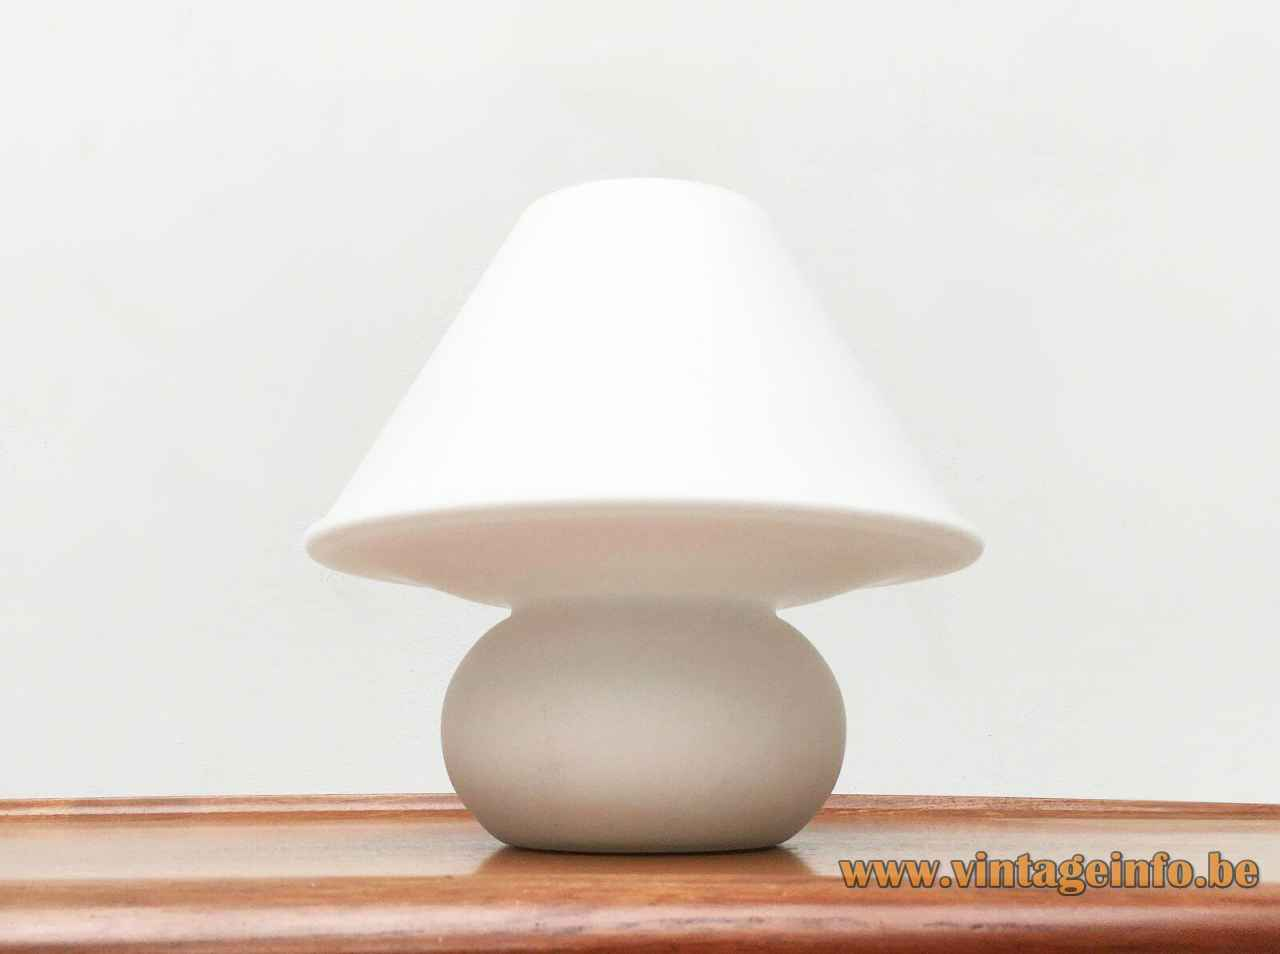 Glashütte Limburg 6249 table lamp frosted opal glass round base & mushroom lampshade 1970s 1980s Germany